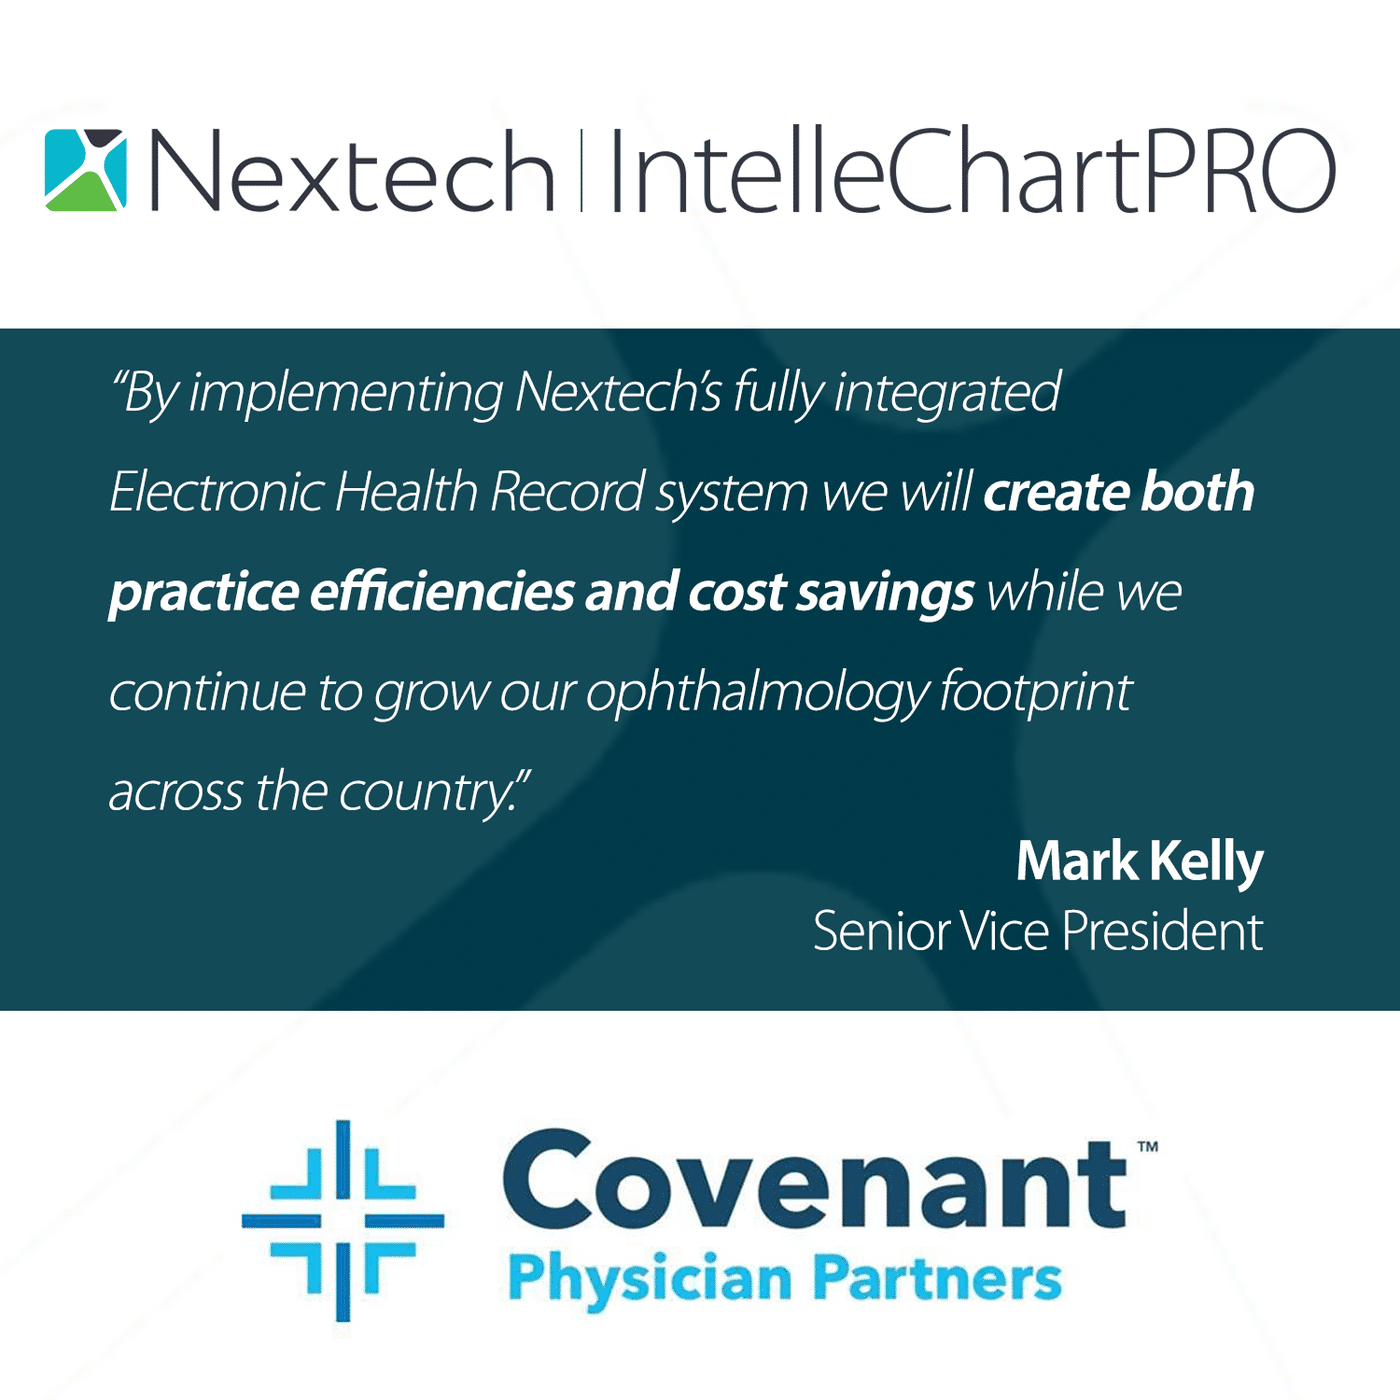 Covenant Physician Partners Selects Nextech's Ophthalmology EHRand ASC Solution